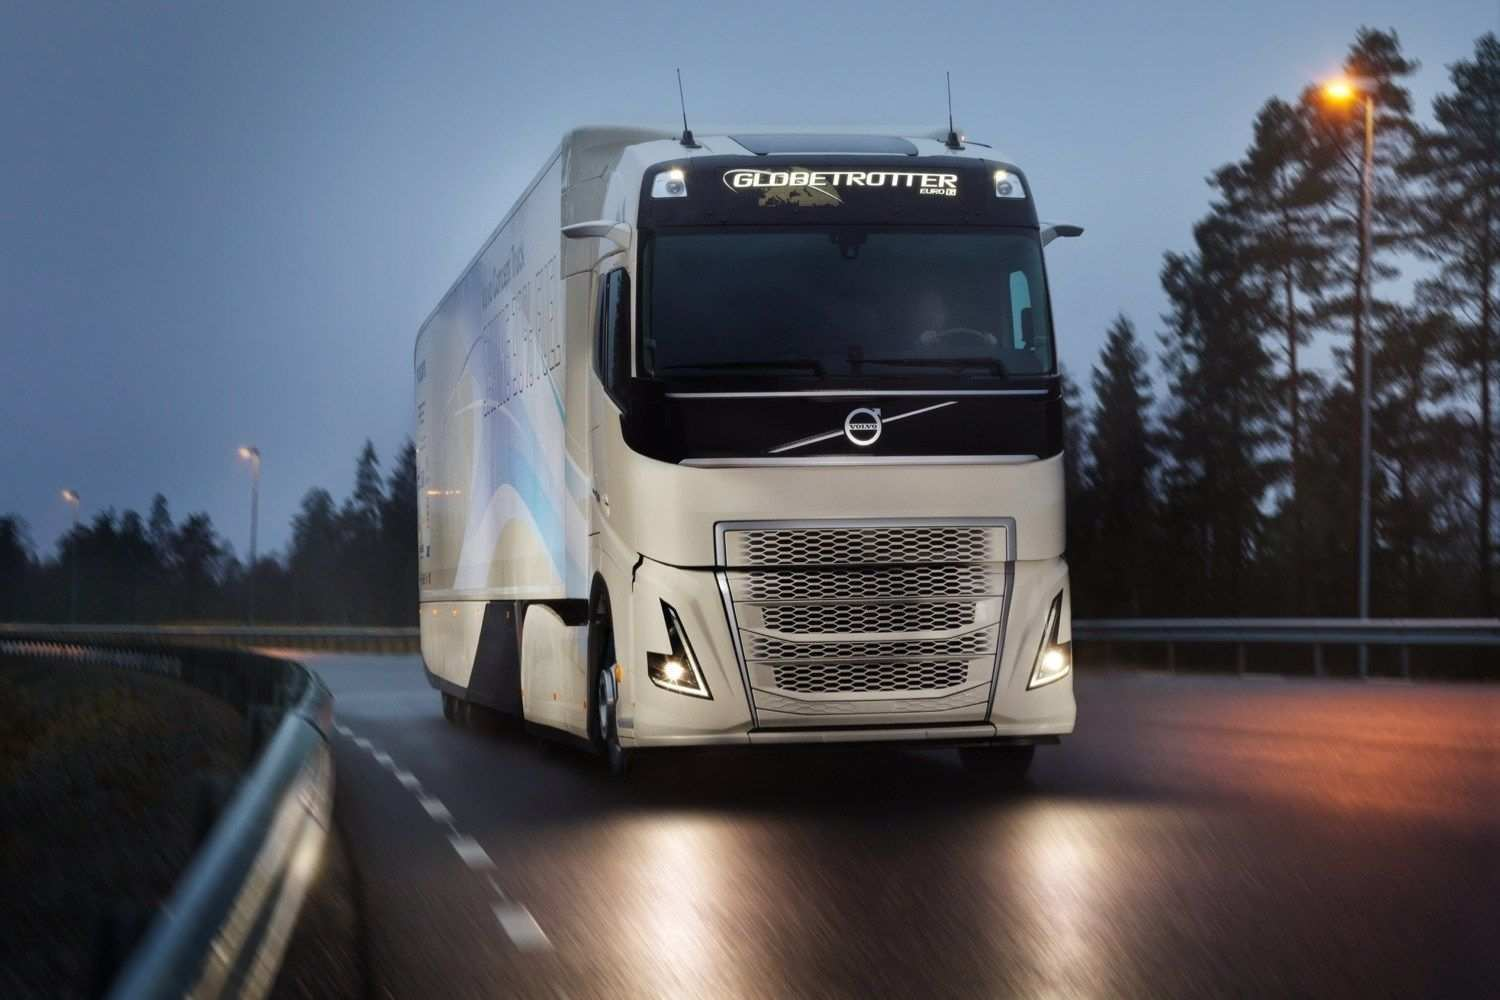 33 Concept of Volvo Fh16 2019 Images by Volvo Fh16 2019